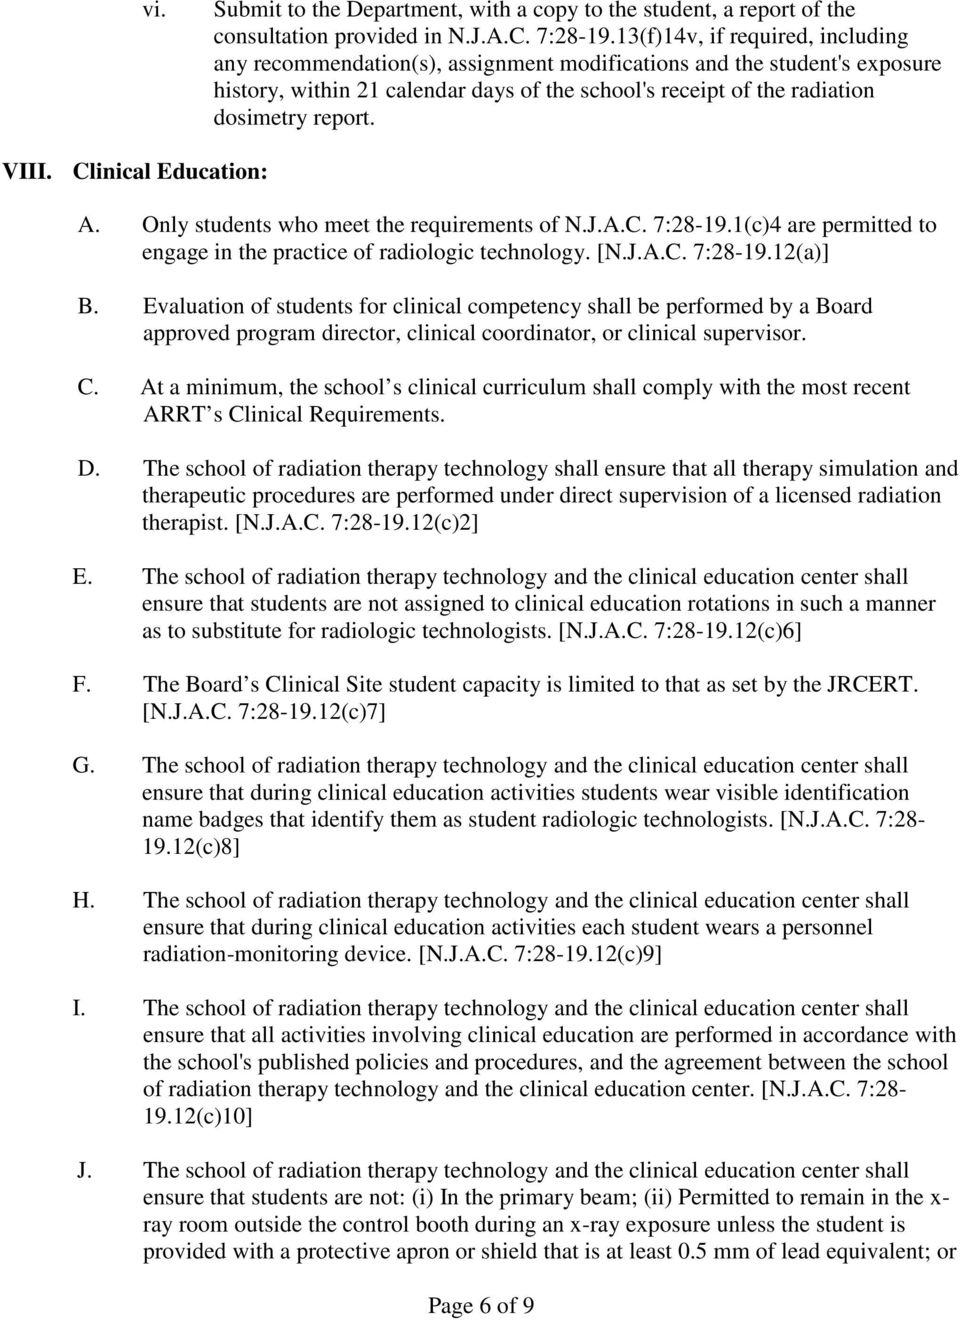 VIII. Clinical Education: A. Only students who meet the requirements of N.J.A.C. 7:28-19.1(c)4 are permitted to engage in the practice of radiologic technology. [N.J.A.C. 7:28-19.12(a)] B.